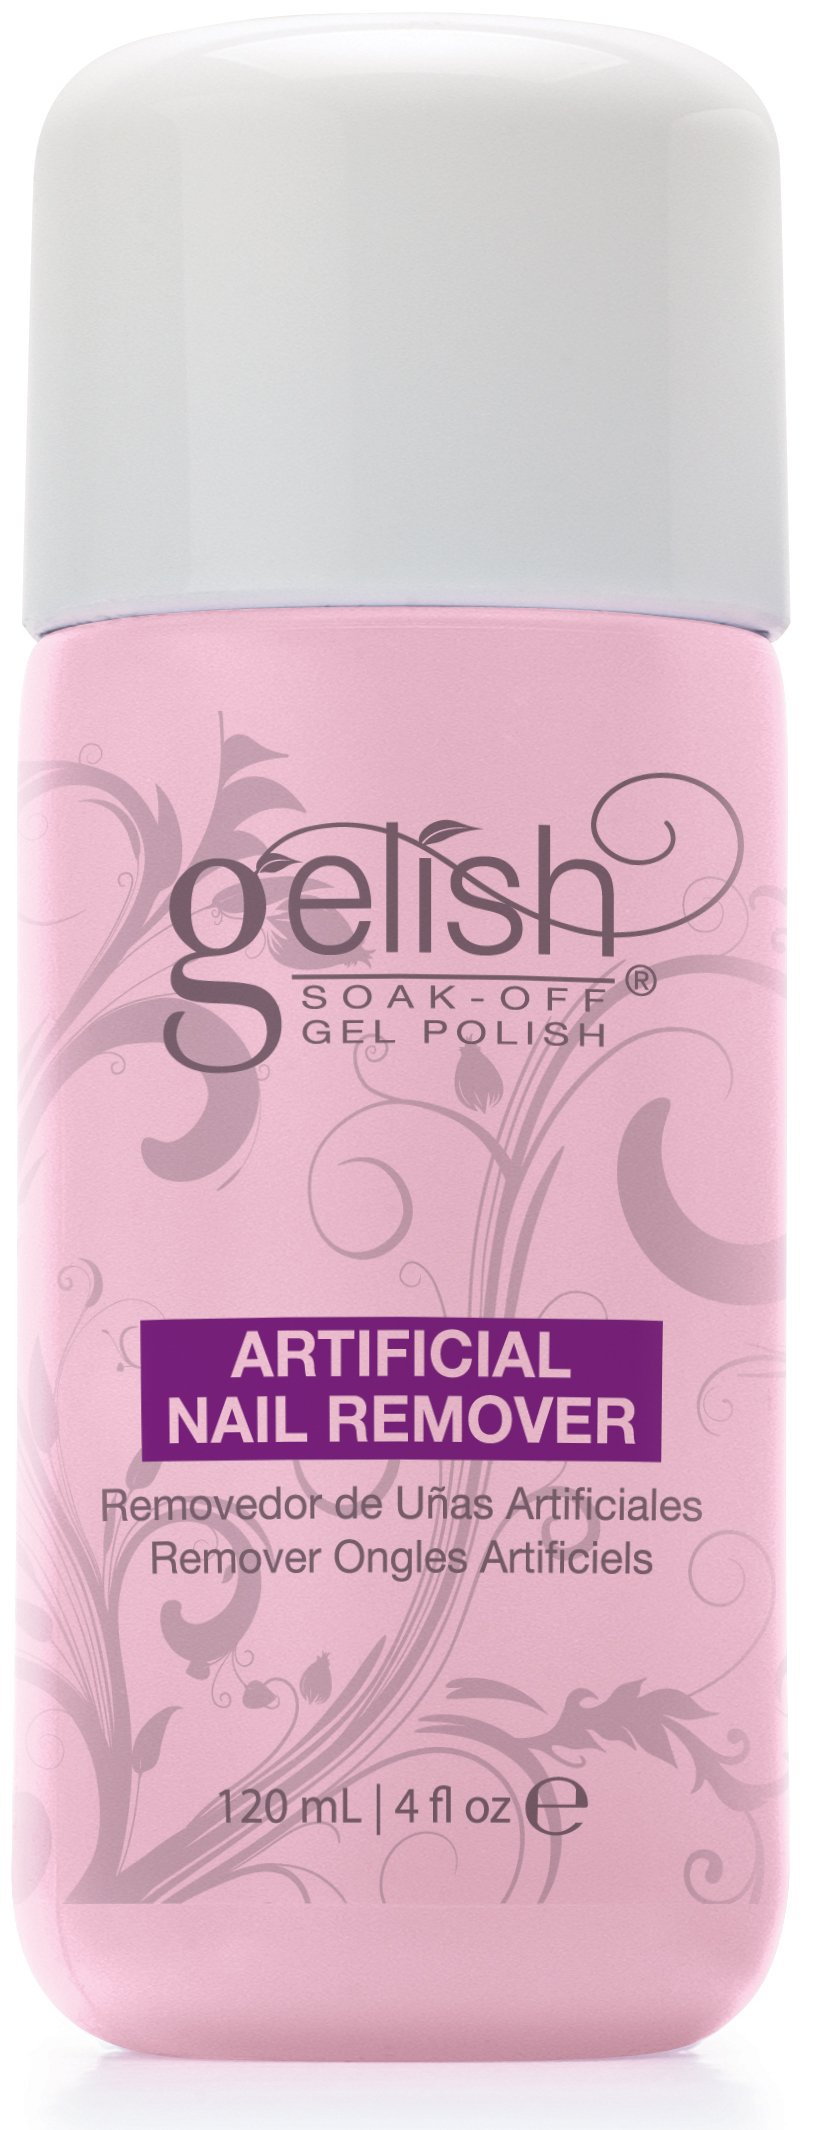 NEW Gelish Full Size Gel Nail Polish Basix Care Kit (15ml) + Remover & Cleanser by Gelish (Image #5)